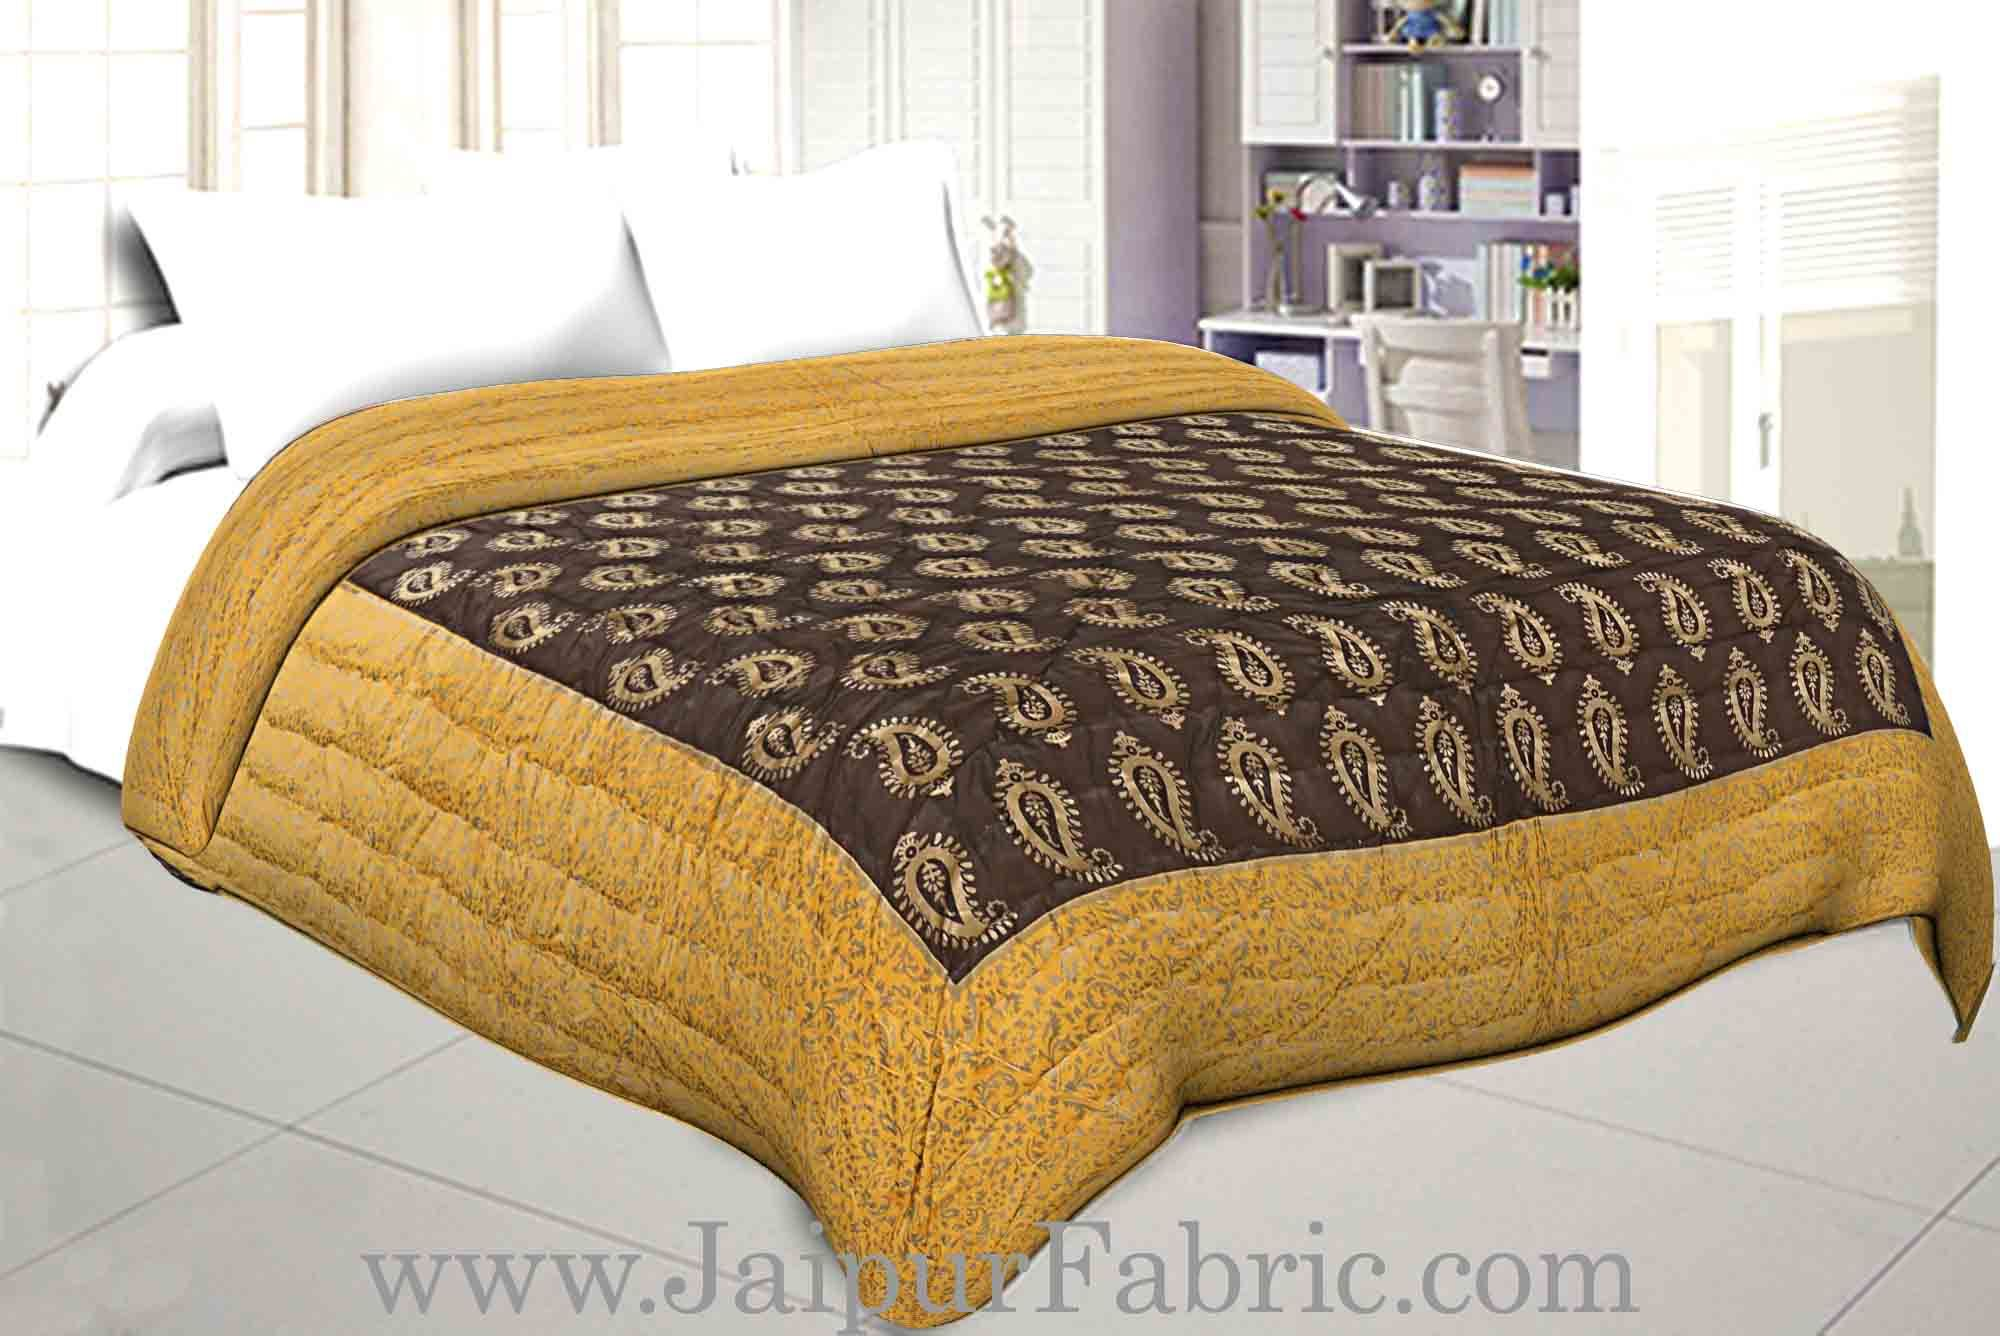 ddb794920f Jaipuri Printed Double Bed Razai Golden Yellow and black with Paisley  pattern